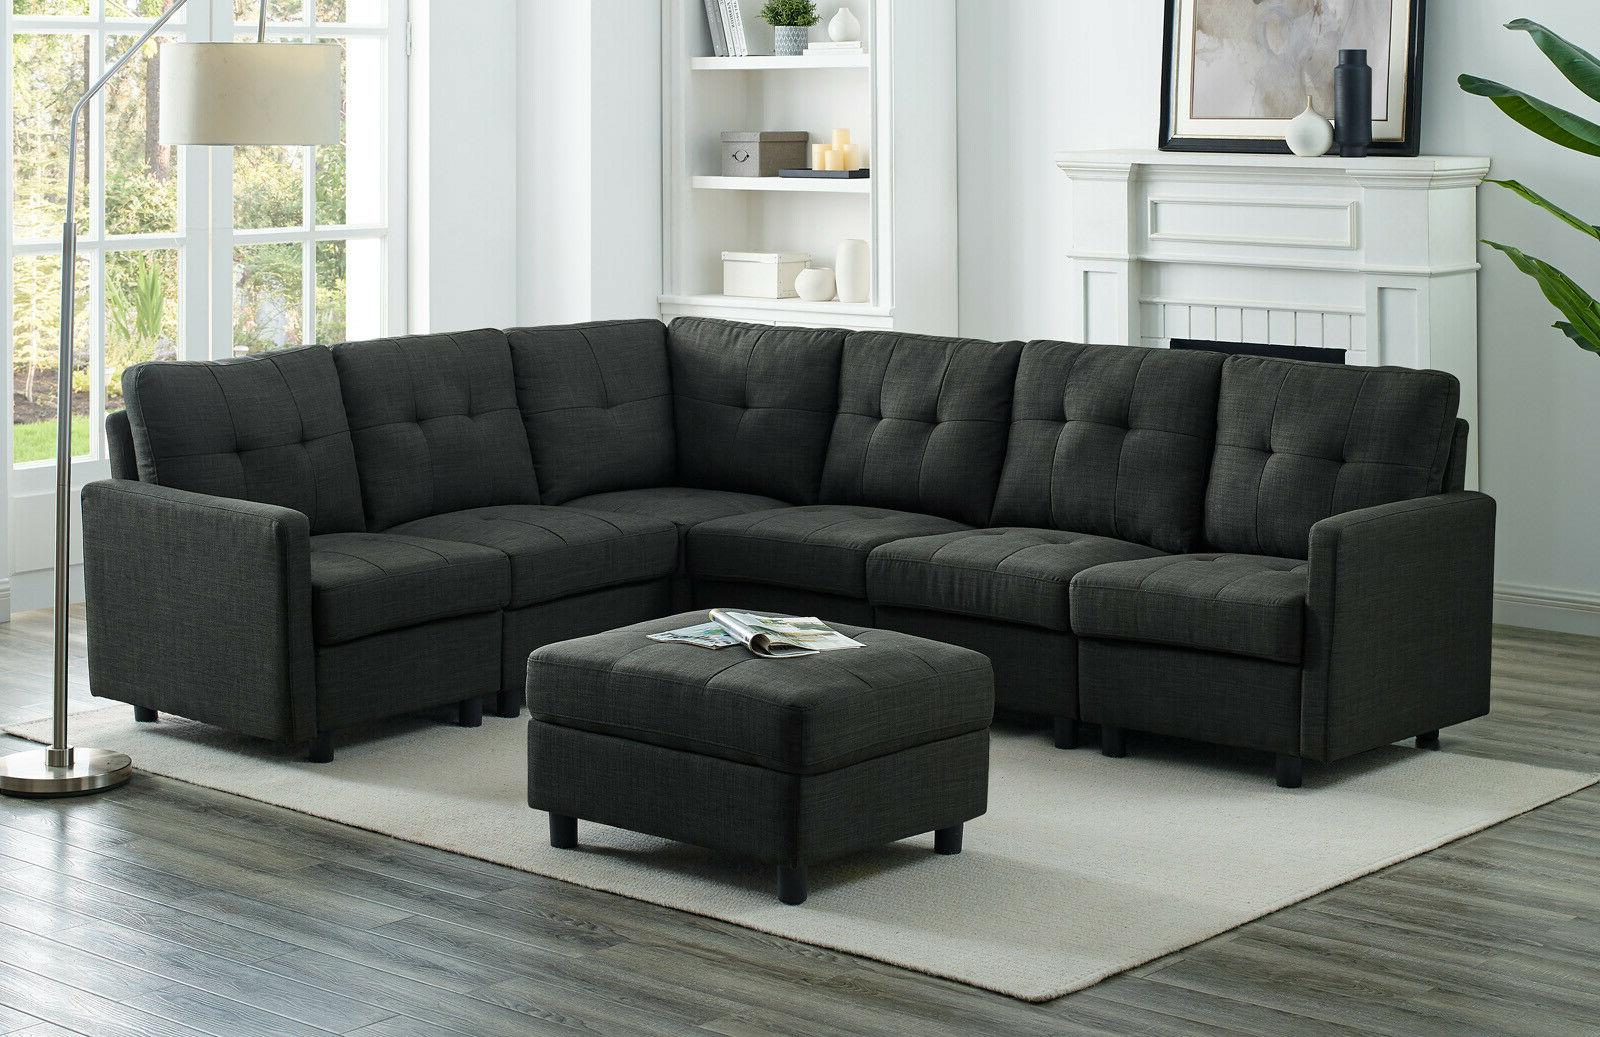 Sectional Sofa Set Modern Linen with Reversible Chaise